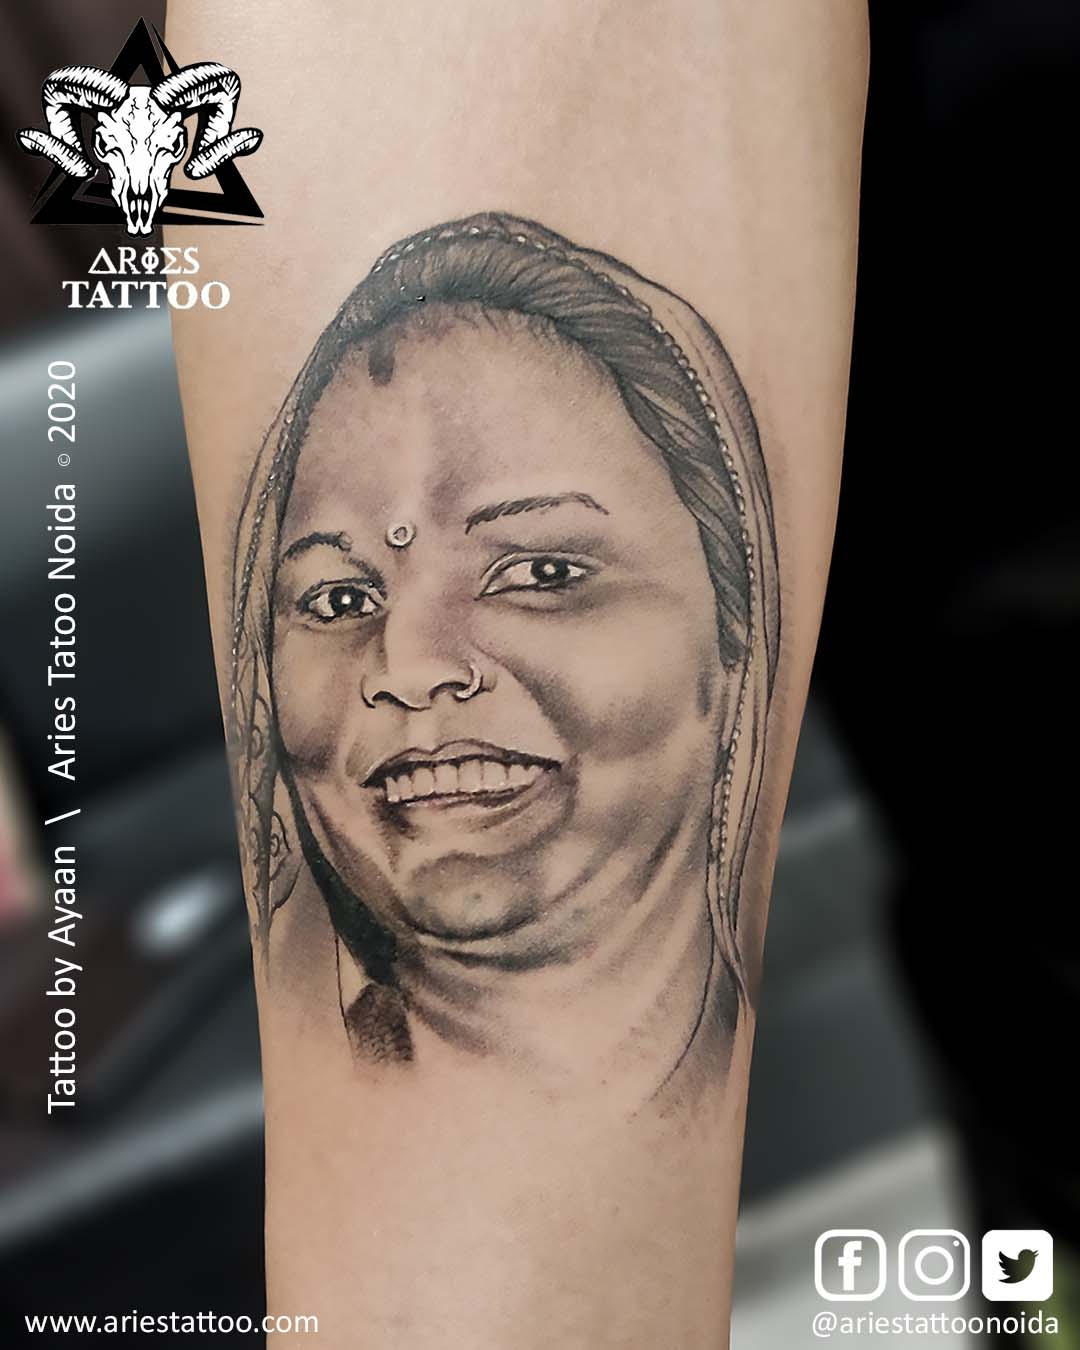 portraittattoo_ayaan_ariestattoonoida | |Aries Tattoo Noida | Tattoo Shop and Studio In Noida